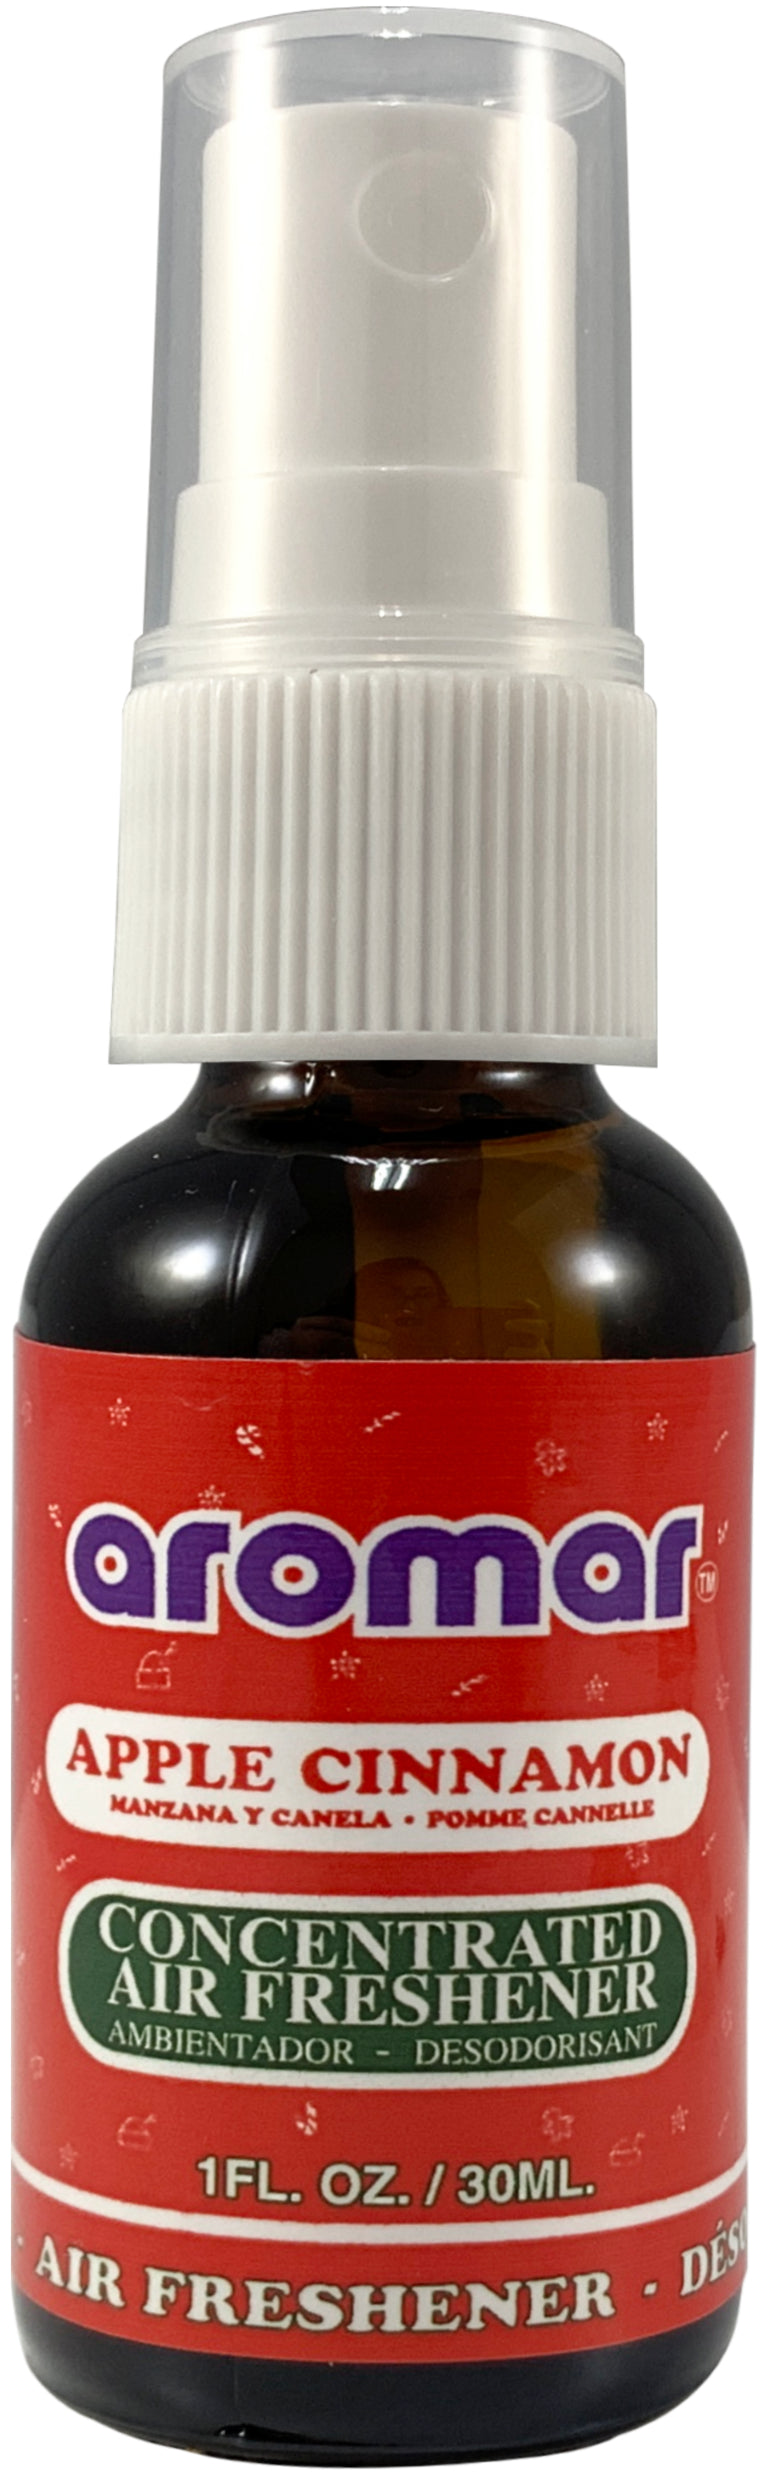 Aromar Holiday Scent of APPLE CINNAMON